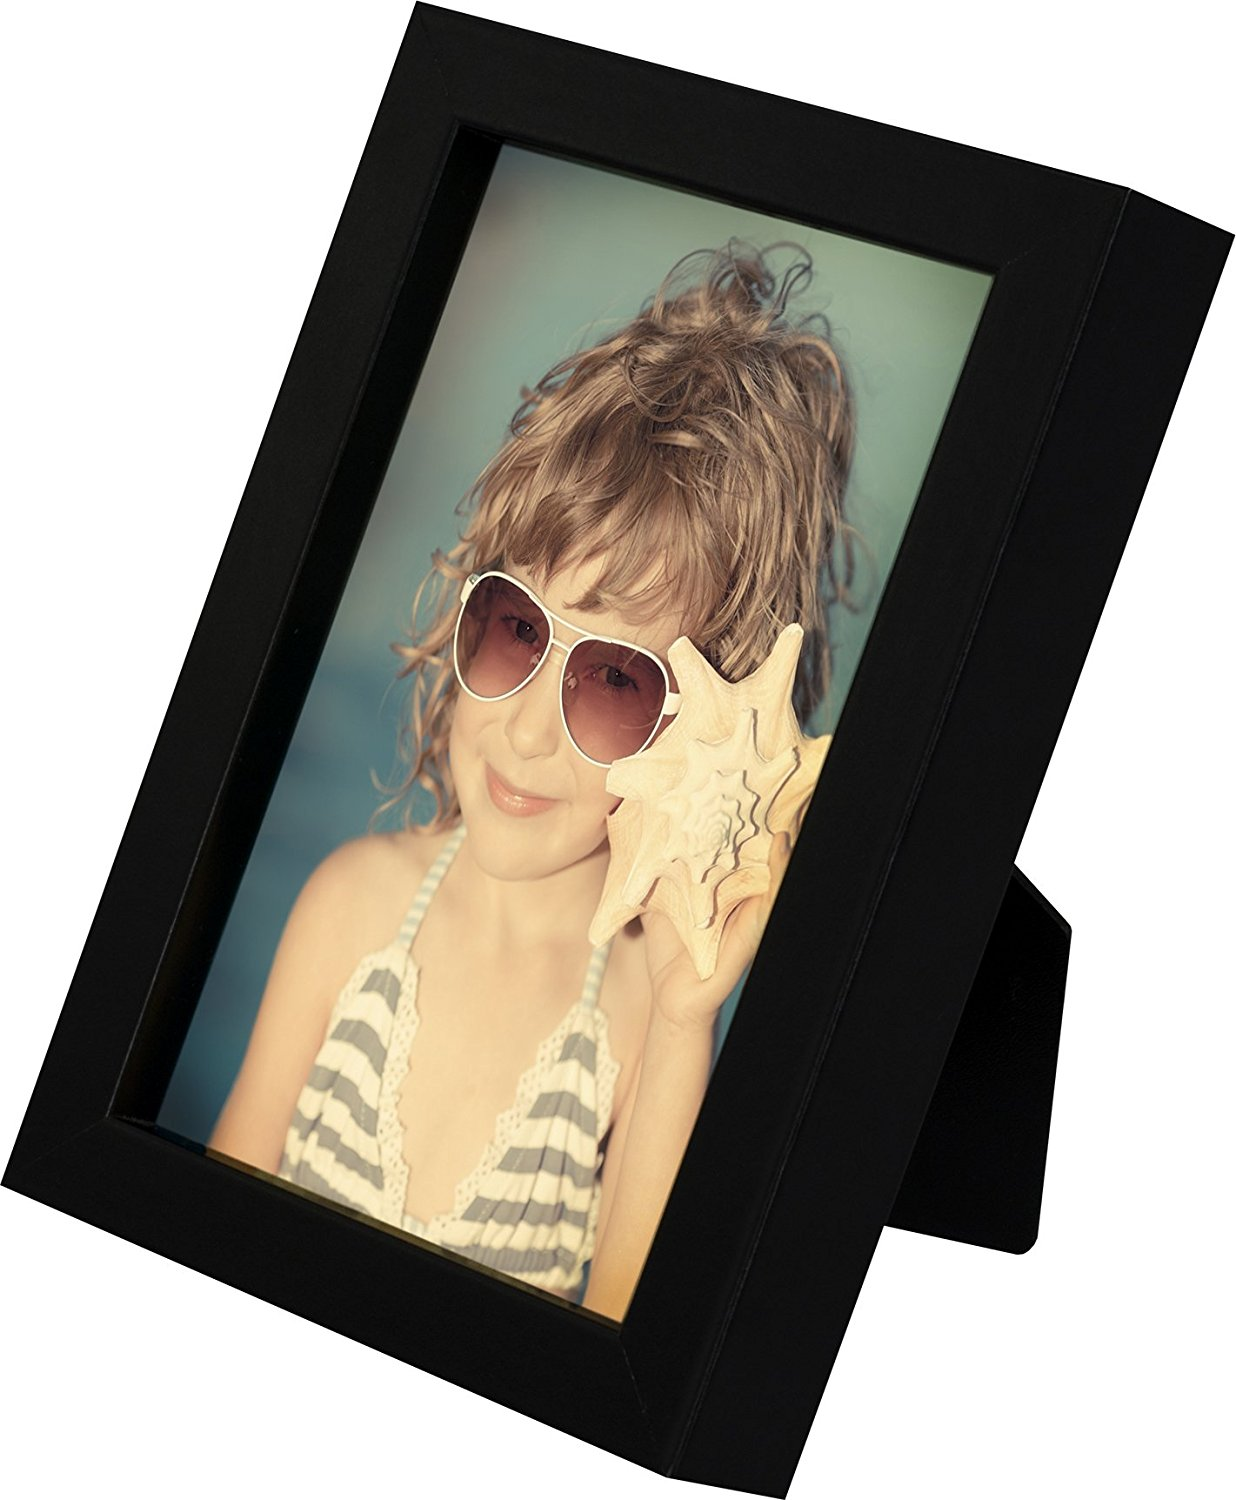 4 x 6-Inch Picture Photo Frame - 2 Pack, BLACK